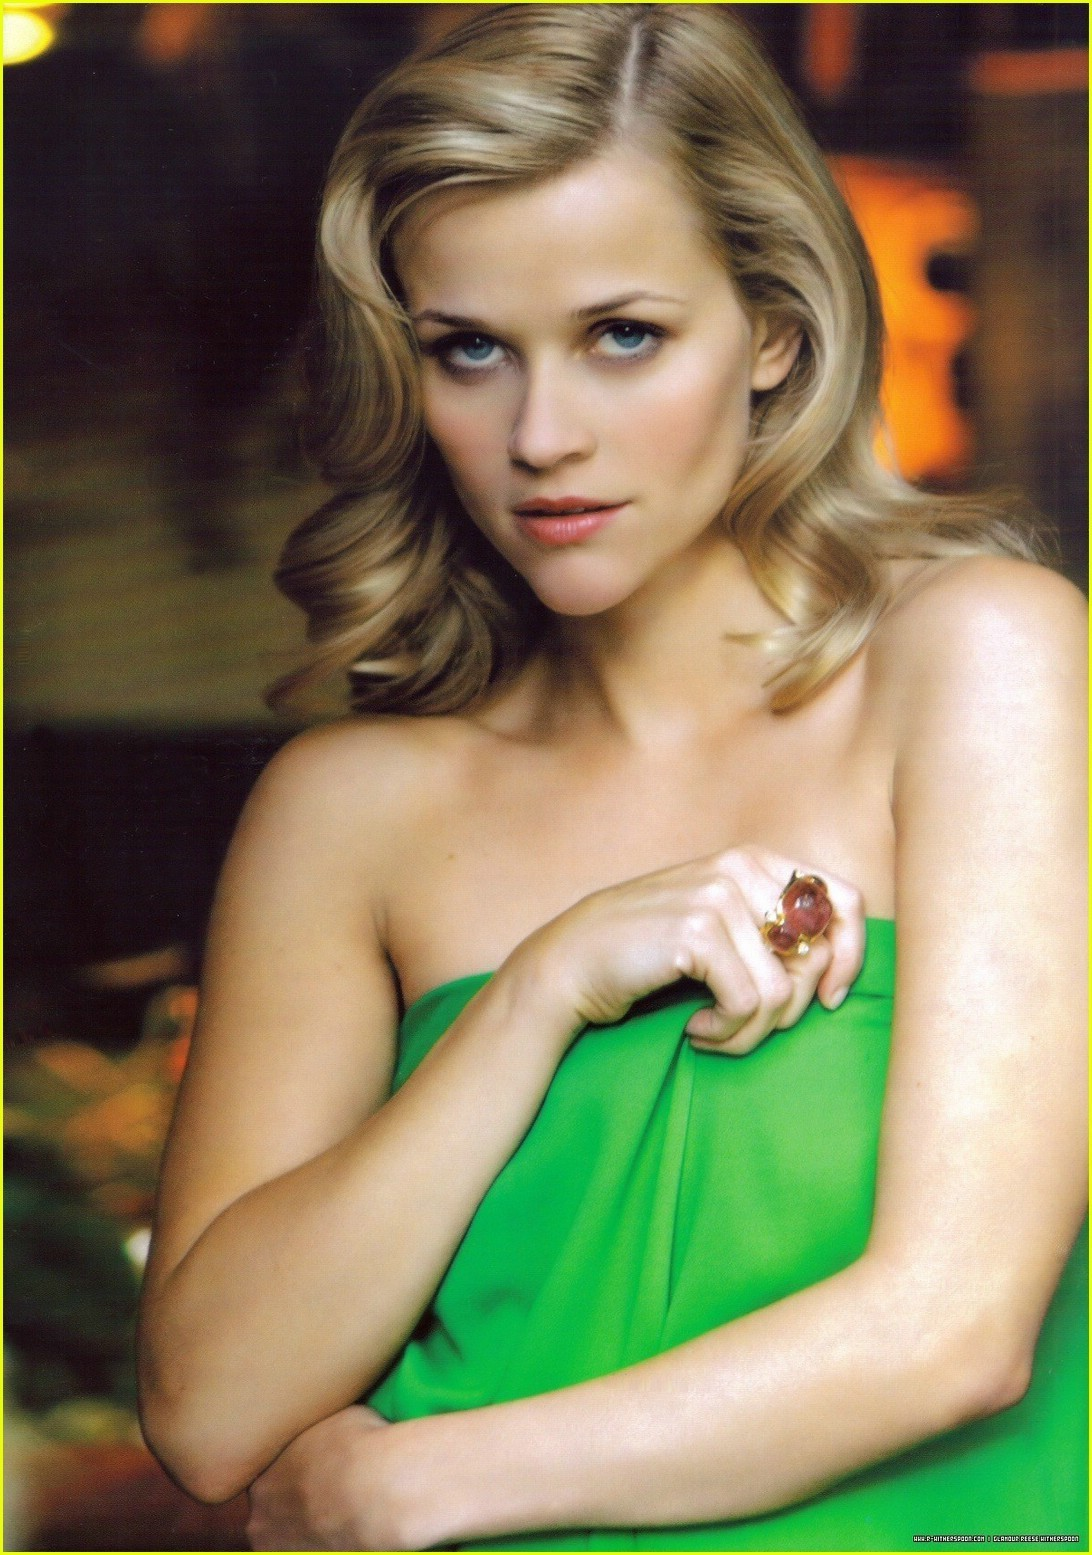 http://images1.fanpop.com/images/image_uploads/Reese-reese-witherspoon-1232504_1092_1555.jpg